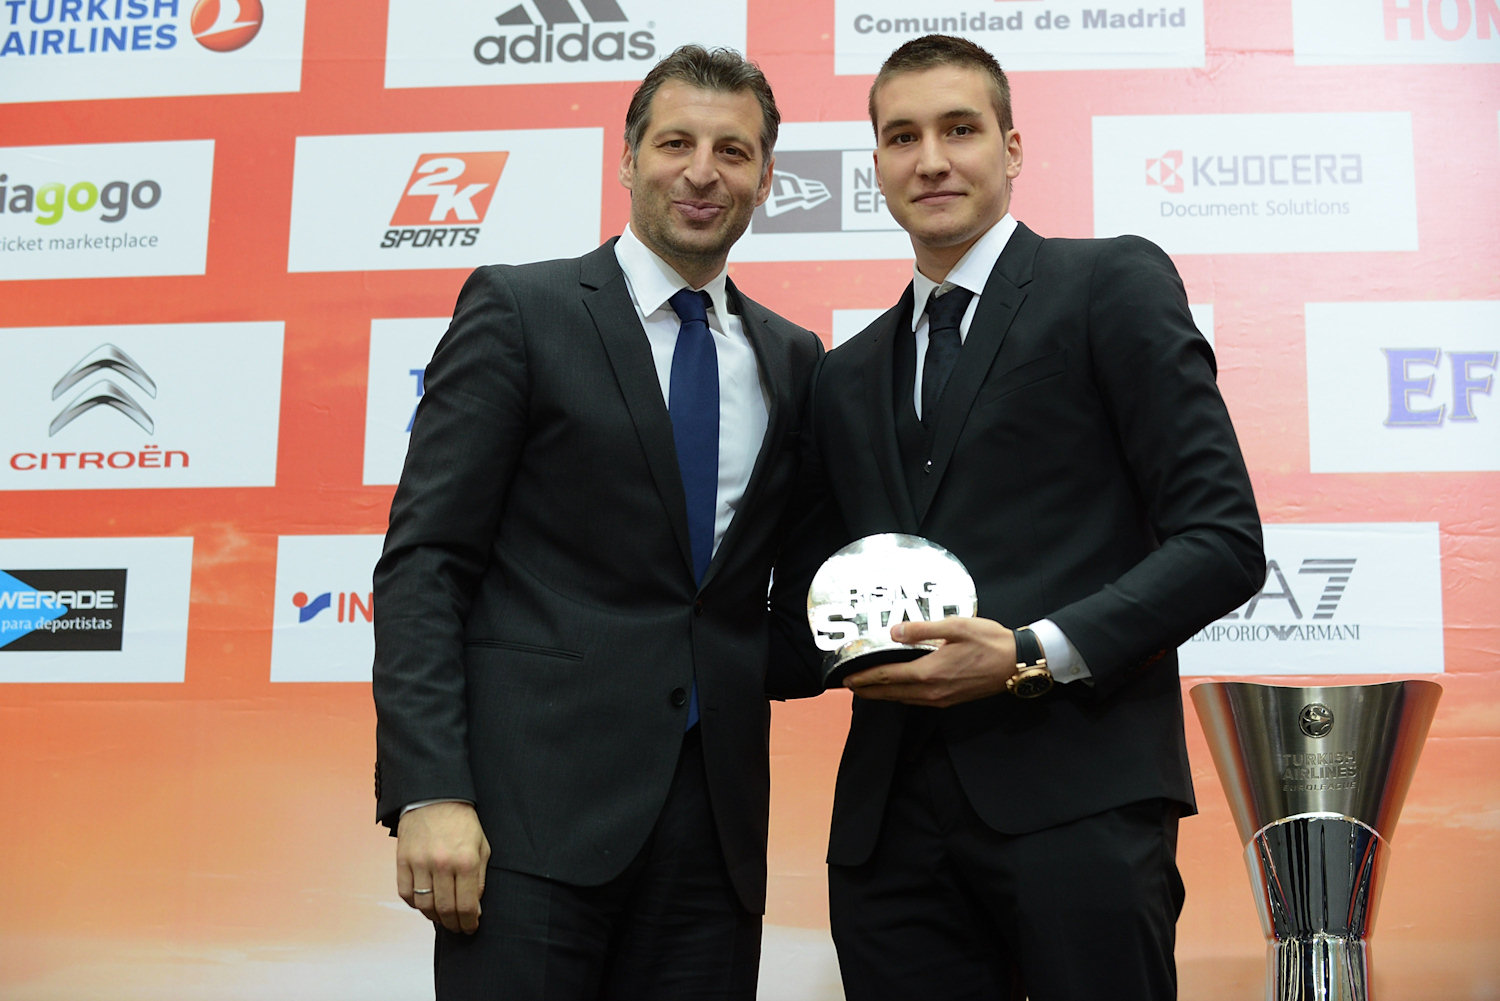 Theo Papaloukas with Bogdan Bogdanovic of Fenerbahce Ulker Istanbul, Rising Star Trophy winner  - Efes Euroleague Award Ceremony - Final Four Madrid 2015 - EB14